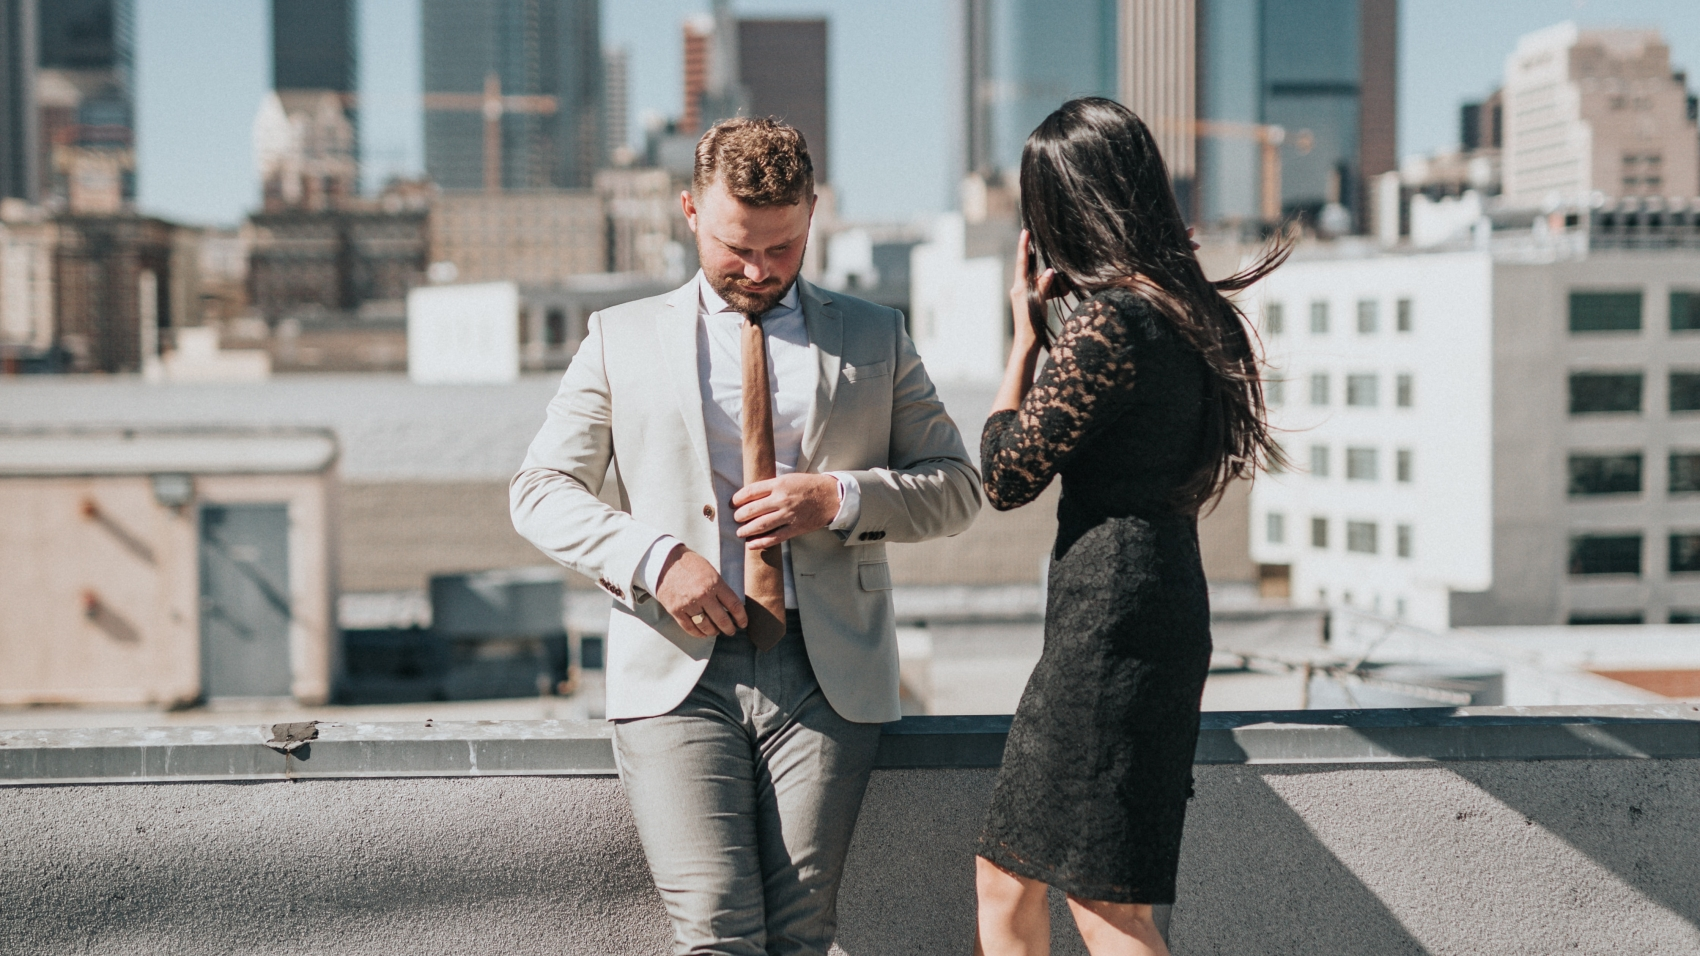 Couple on windy rooftop, he fidgets with his tie, she looks into the distance.